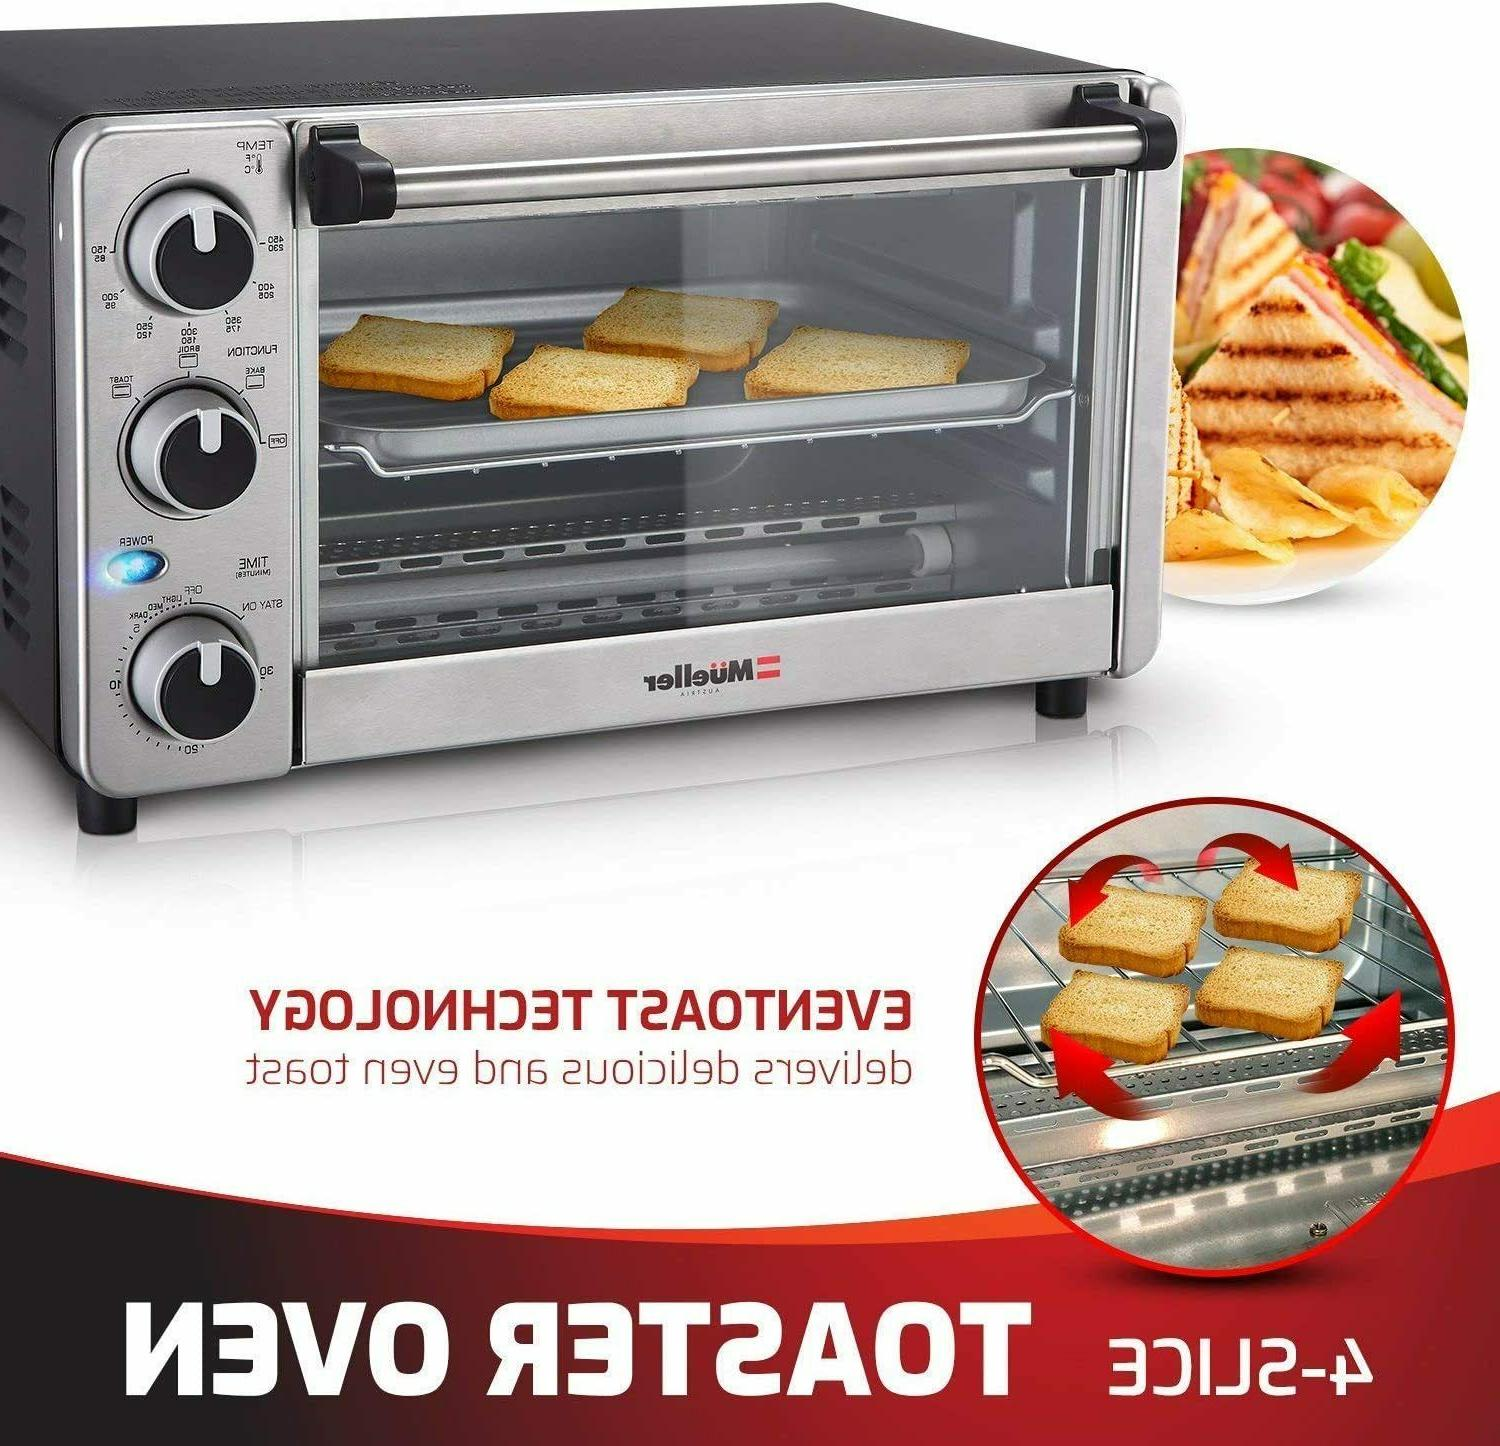 Toaster Oven 4 Multi-function with